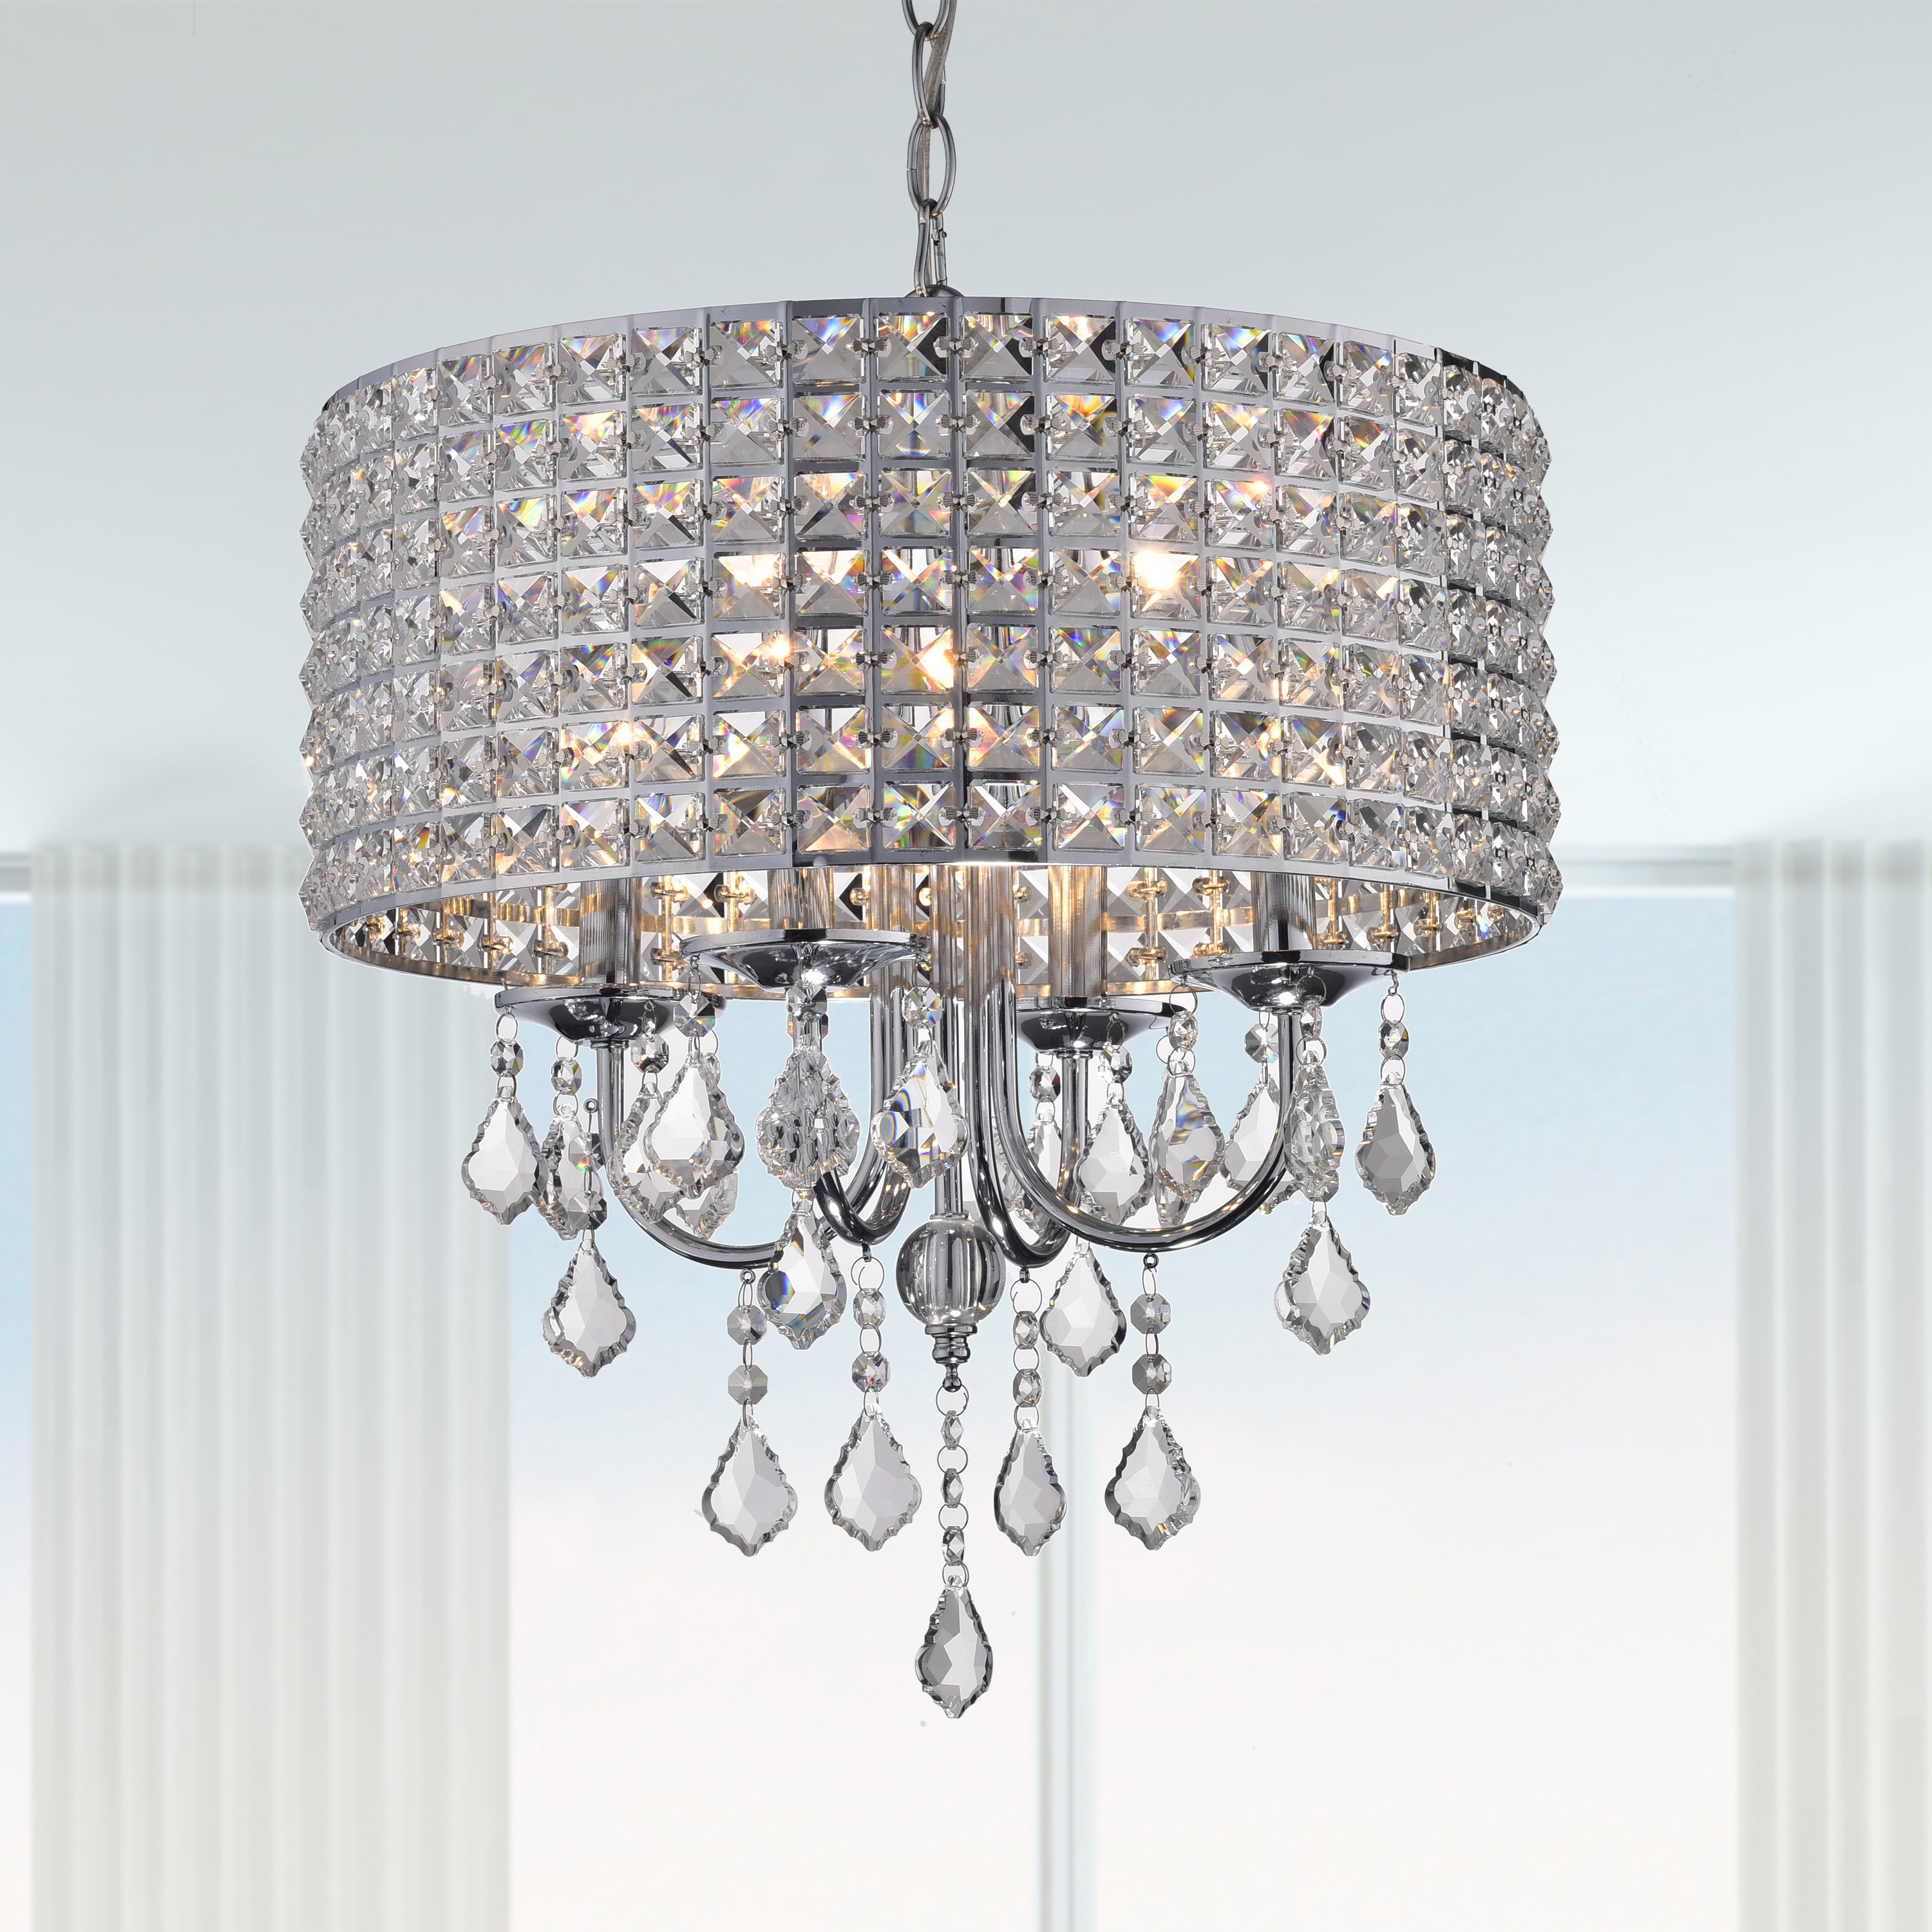 Albano 4 Light Crystal Chandelier Throughout Most Popular Albano 4 Light Crystal Chandeliers (View 4 of 25)